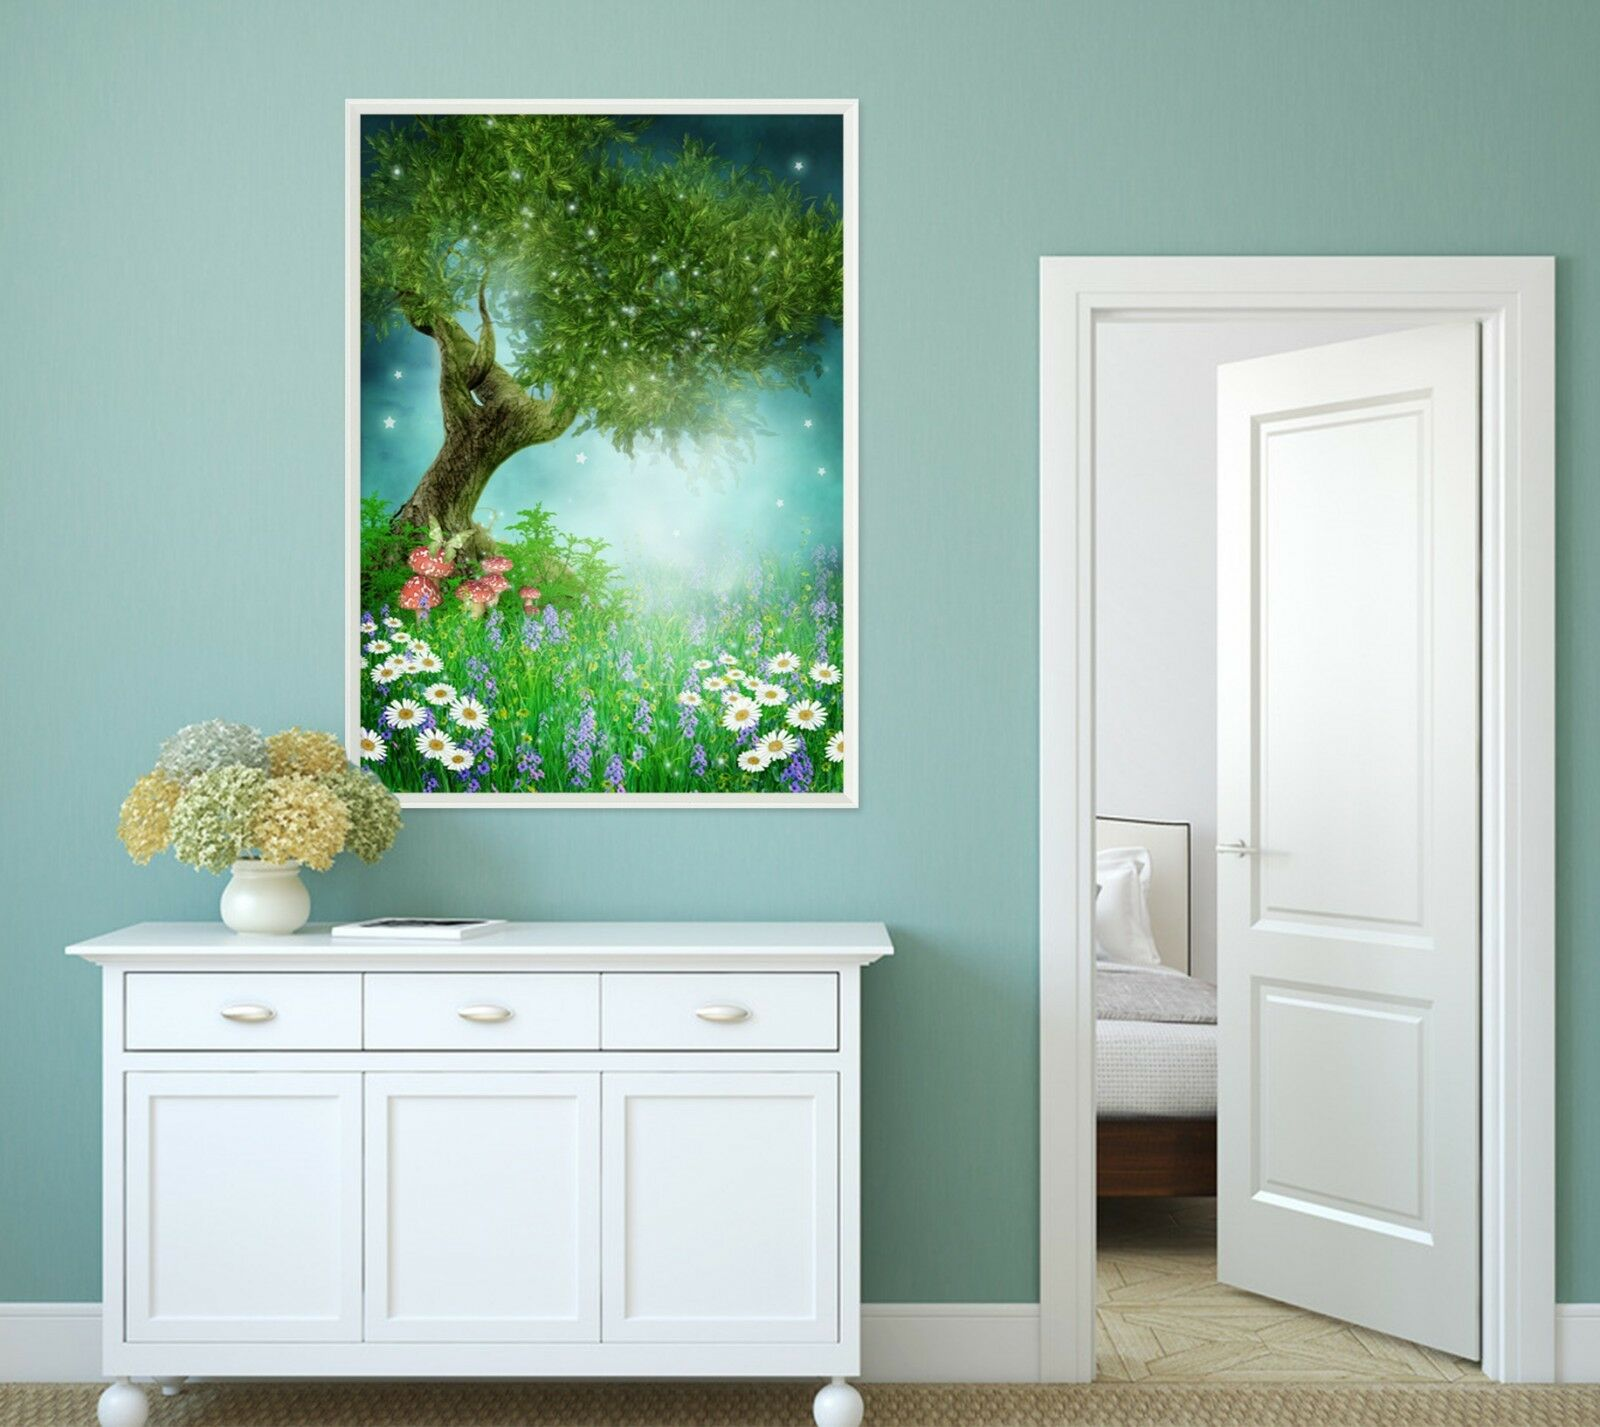 3D Firefly Flower Tree 2 Framed Poster Home Decor Drucken Painting Kunst WandPapier